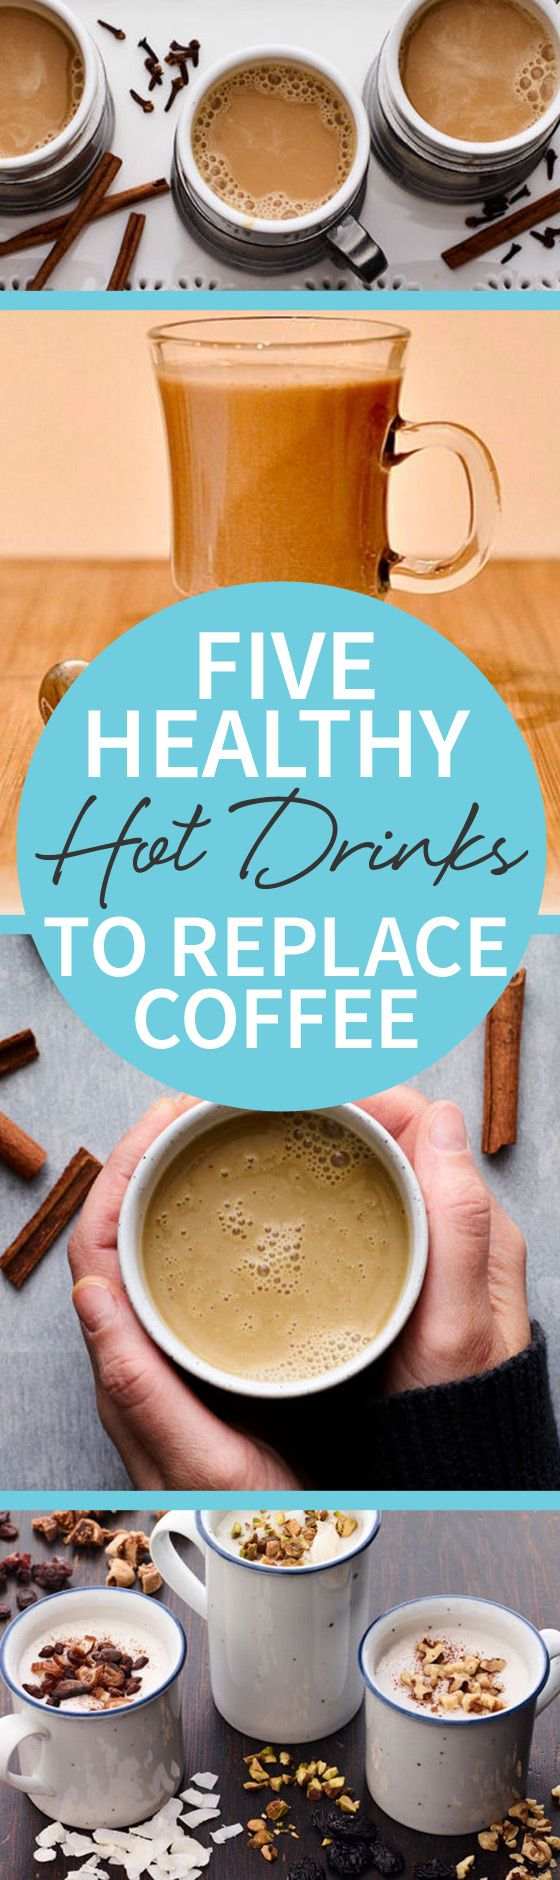 Give your morning routine a run for its money by picking one of these Five Healthy Hot Drinks To Replace Coffee! Find your new favorite here! http://www.joyofkosher.com/2017/01/five-healthy-hot-drinks-to-replace-coffee/